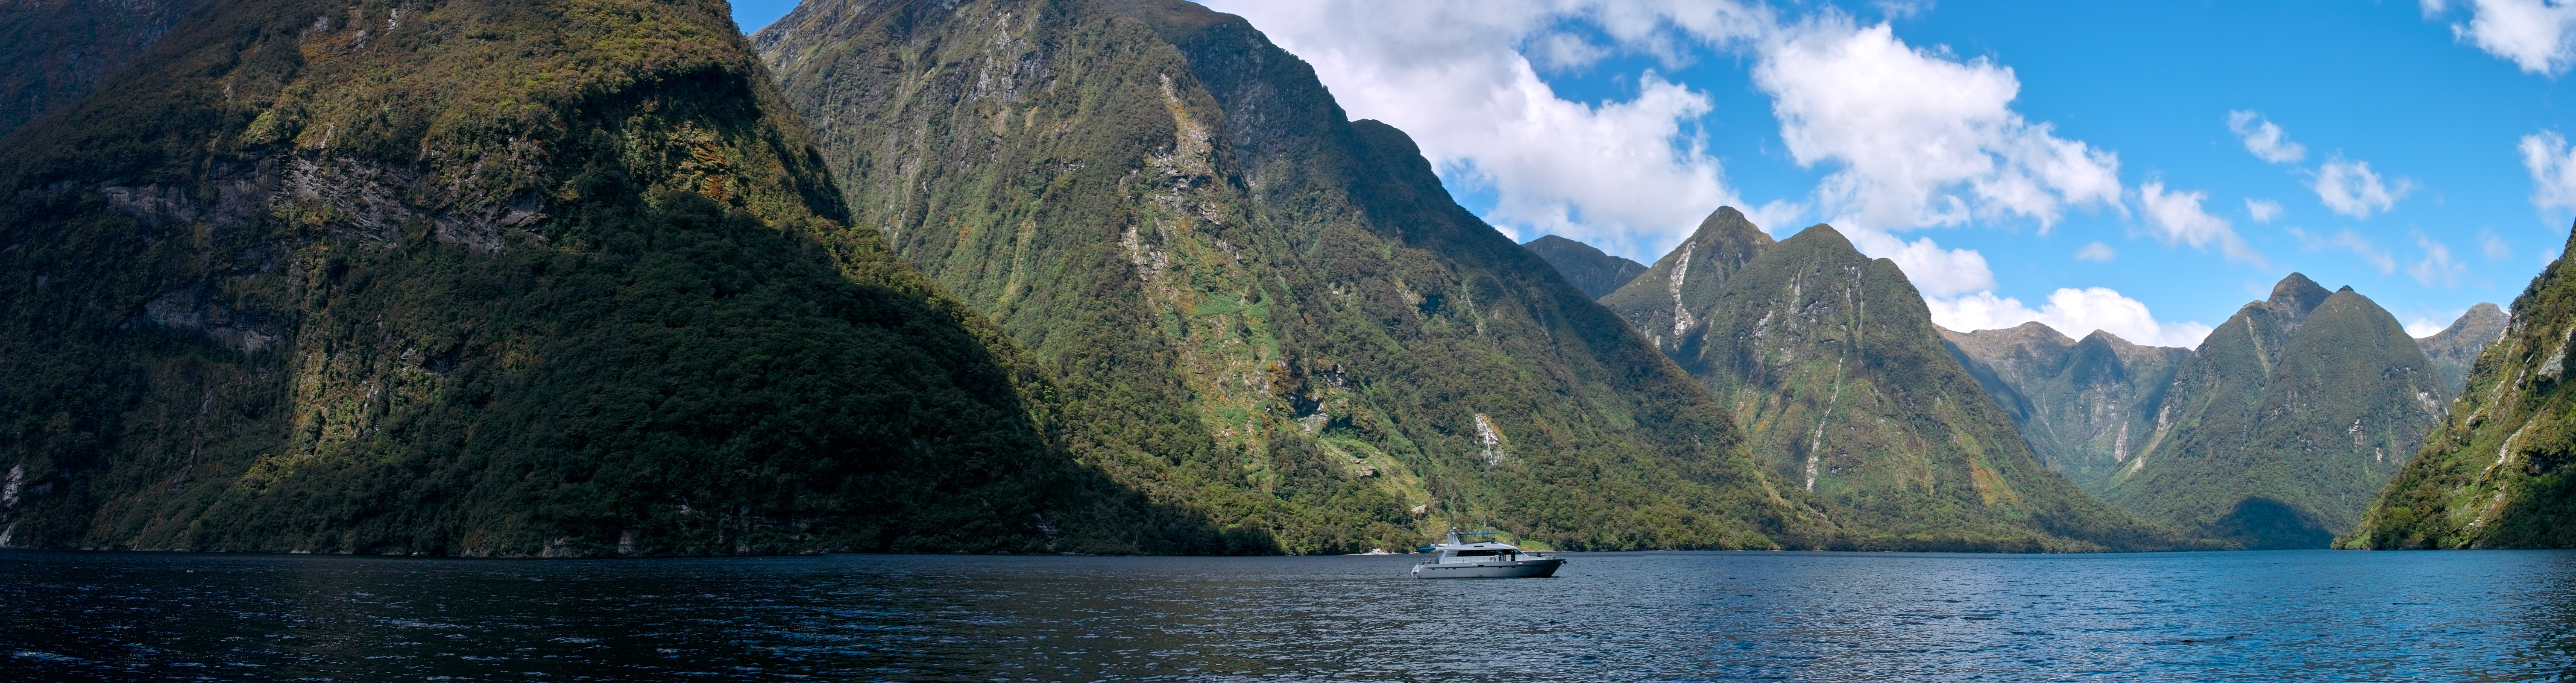 Inlet at Doubtful Sound